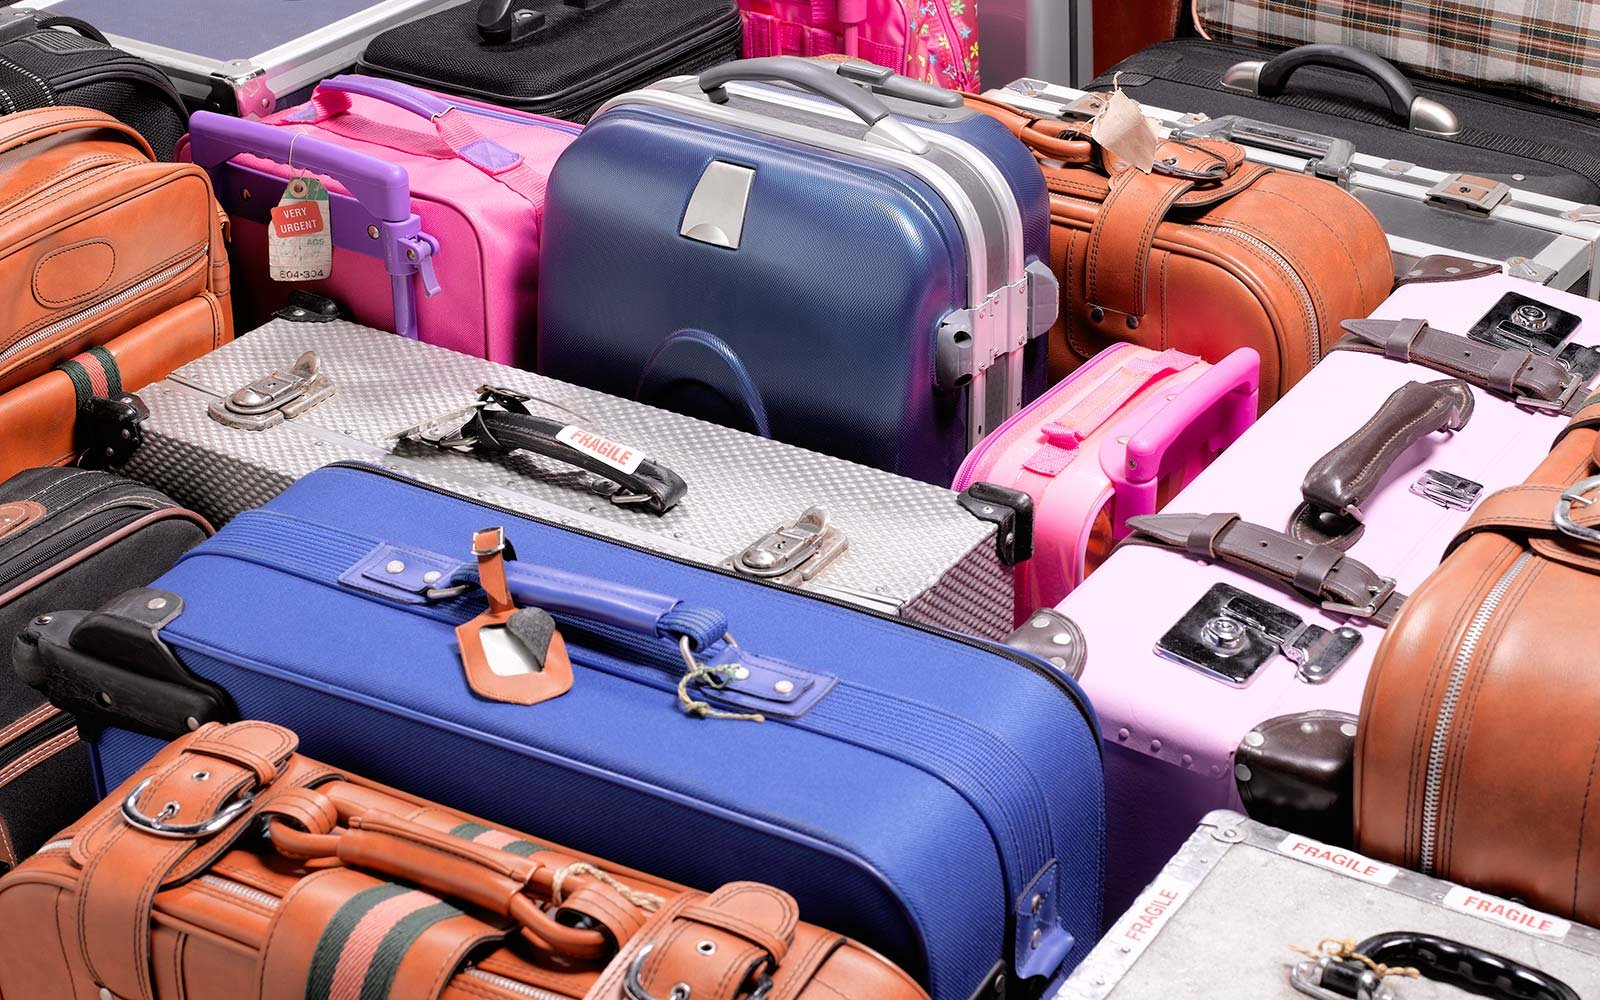 Airport Baggage Luggage Suitcases